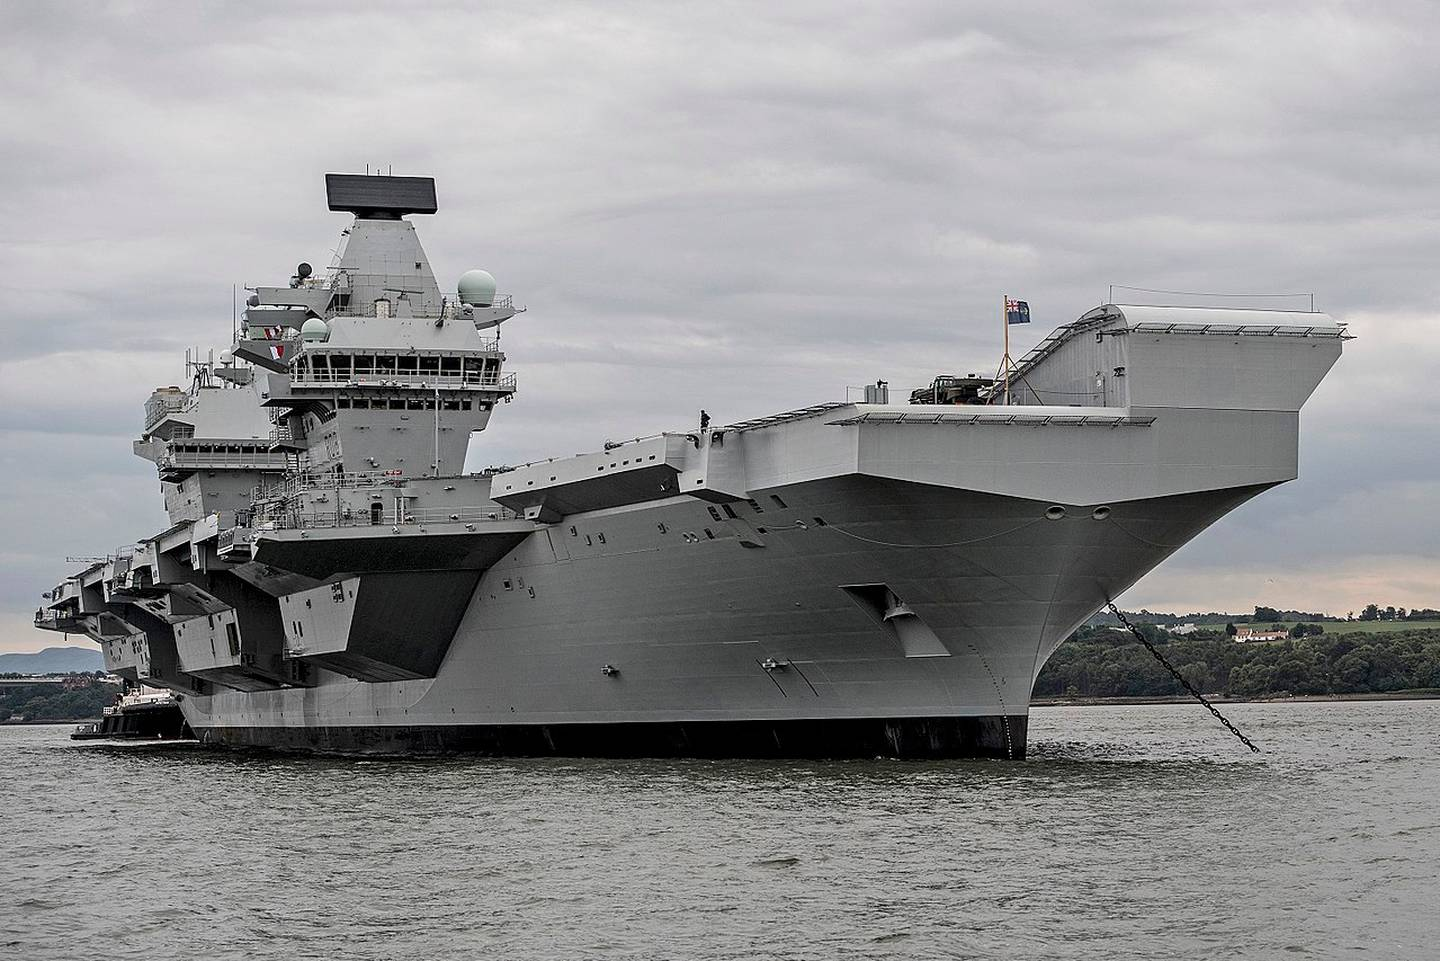 The British aircraft carrier Queen Elizabeth II which is currently in Asia on its maiden voyage. Photo / Royal Navy